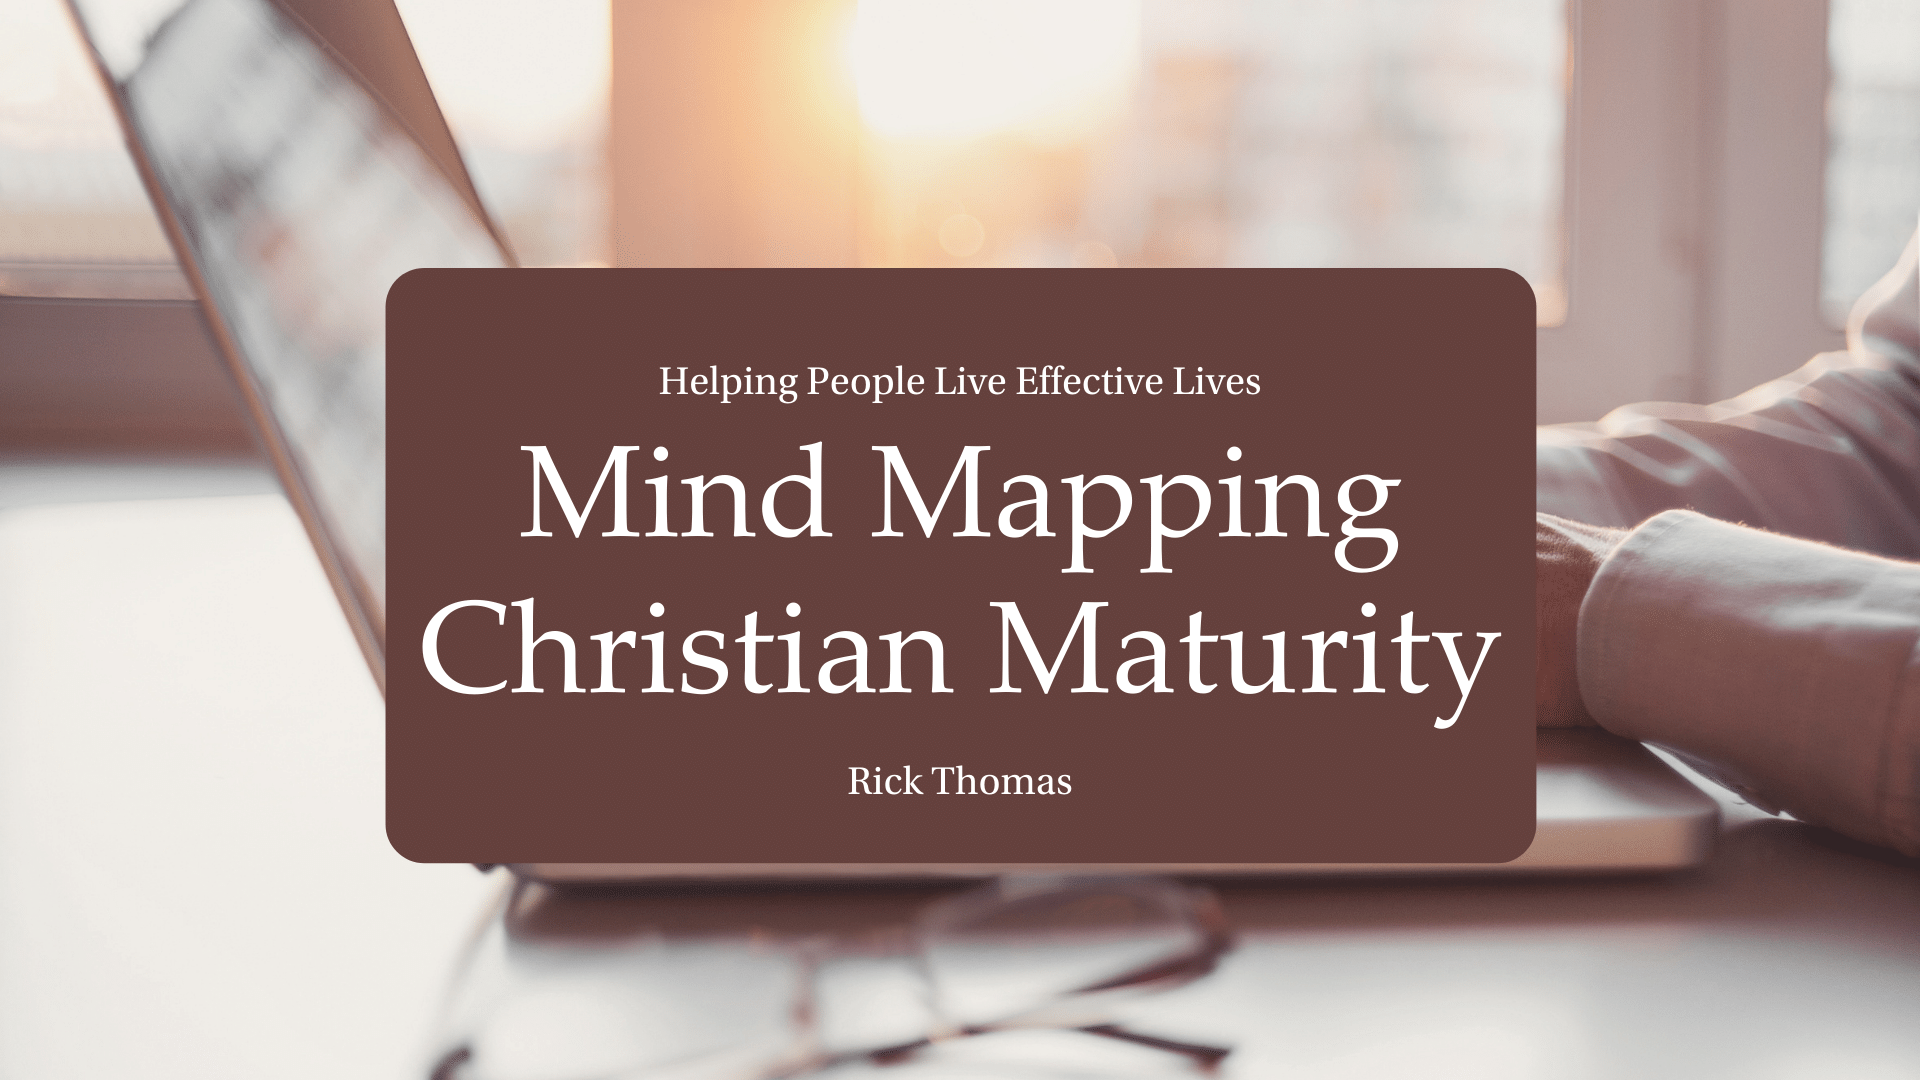 Video Channel Mind Mapping Christian Maturity